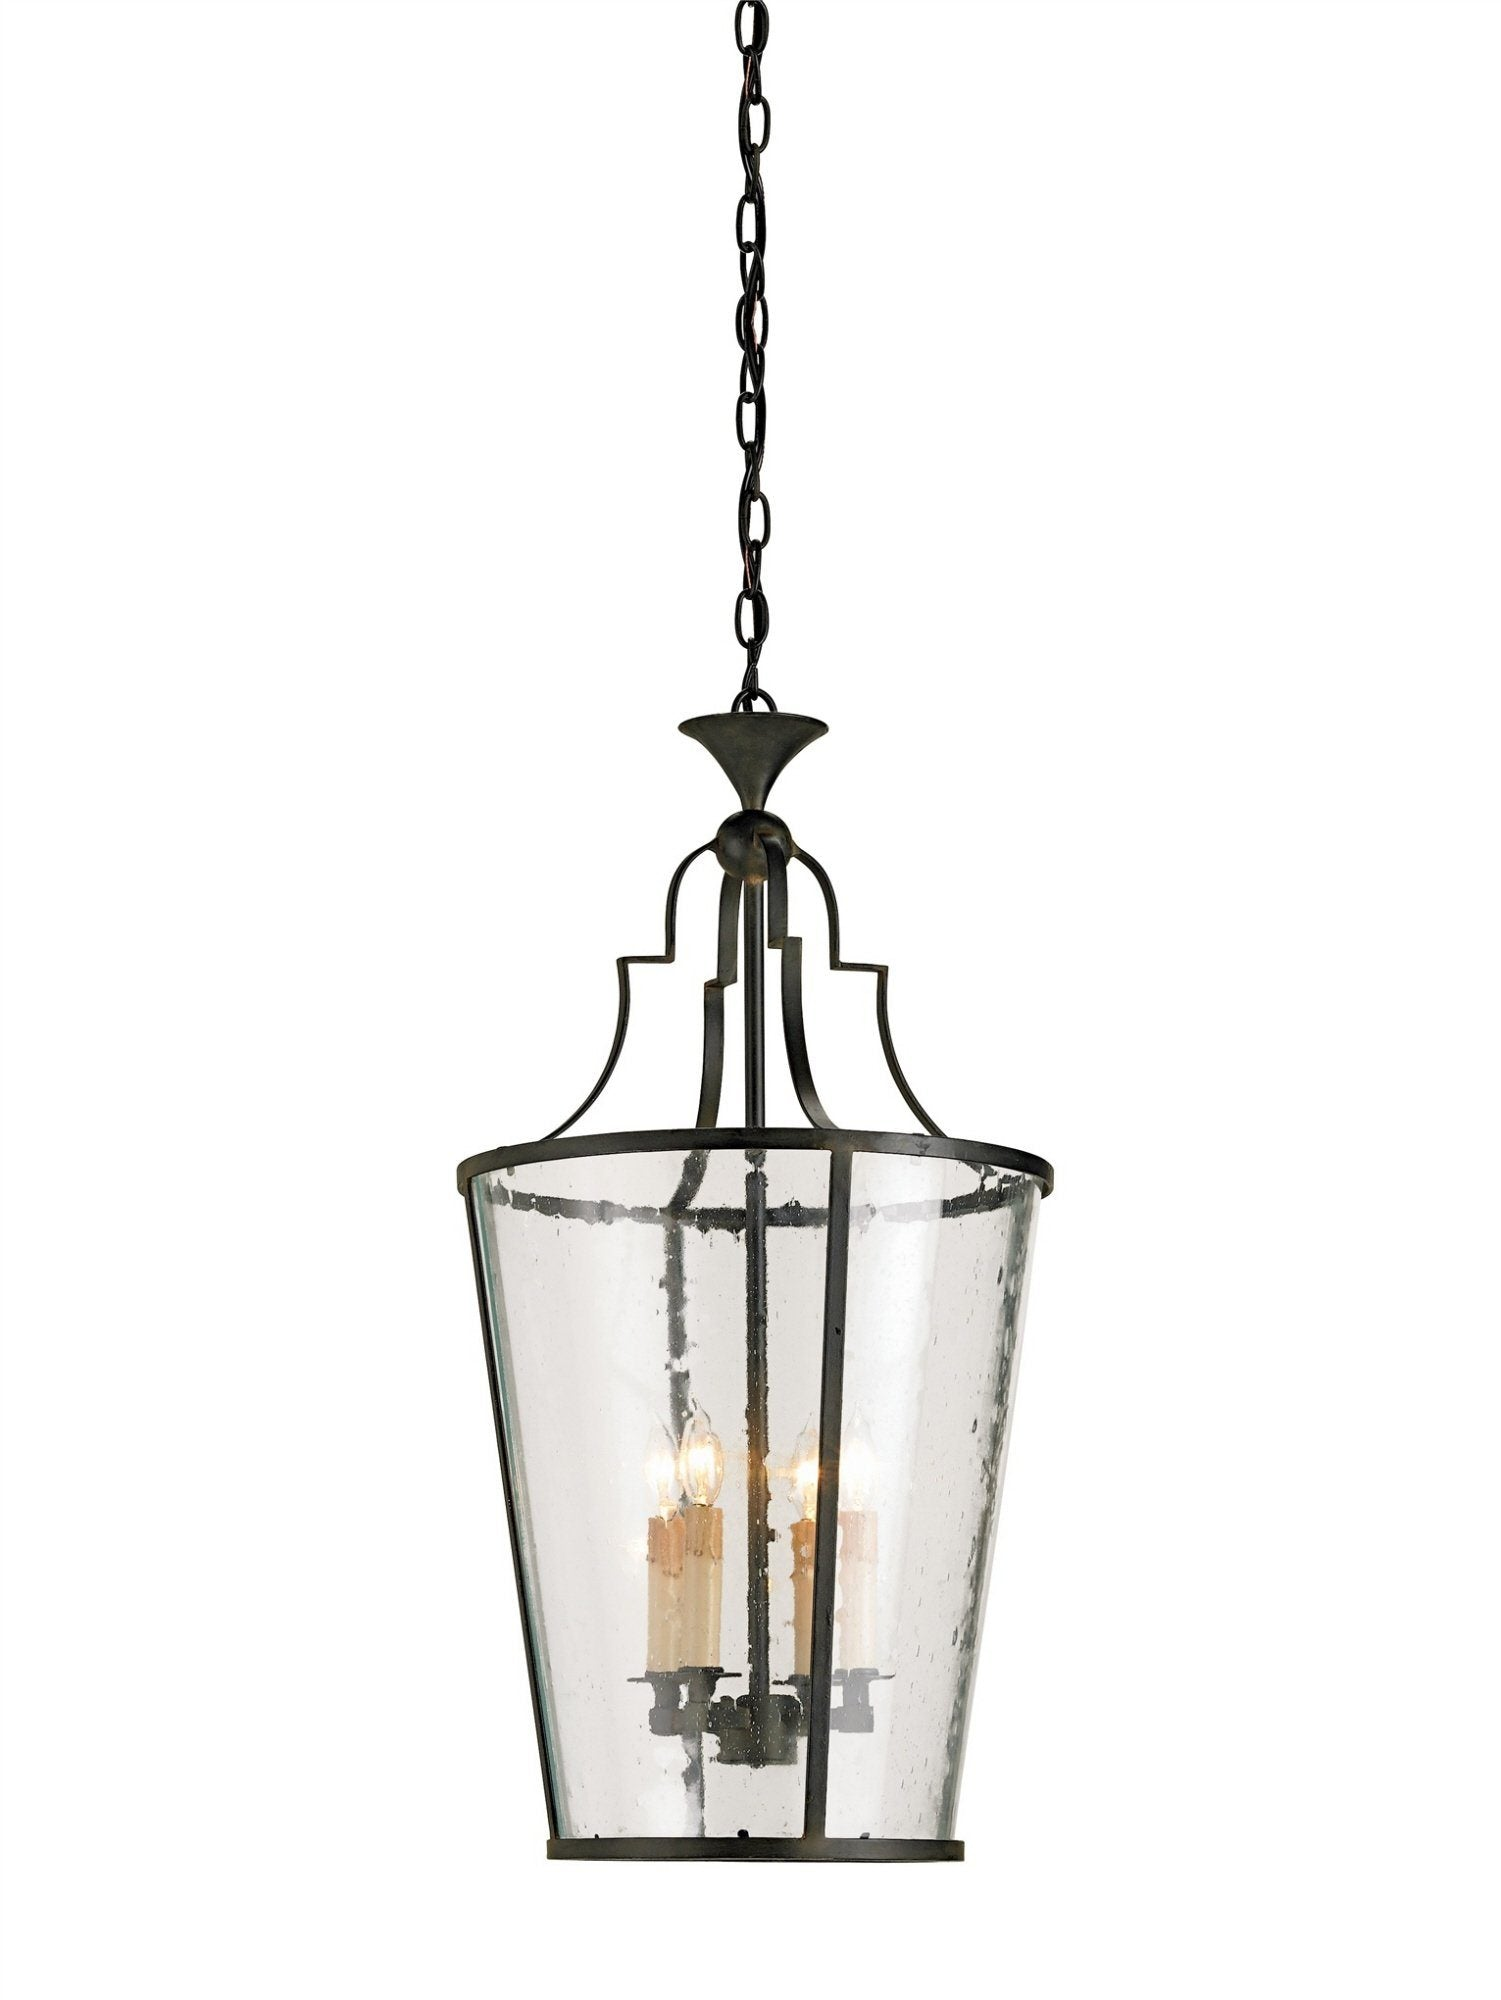 Currey and Company Fergus Lantern 9468 - LOVECUP